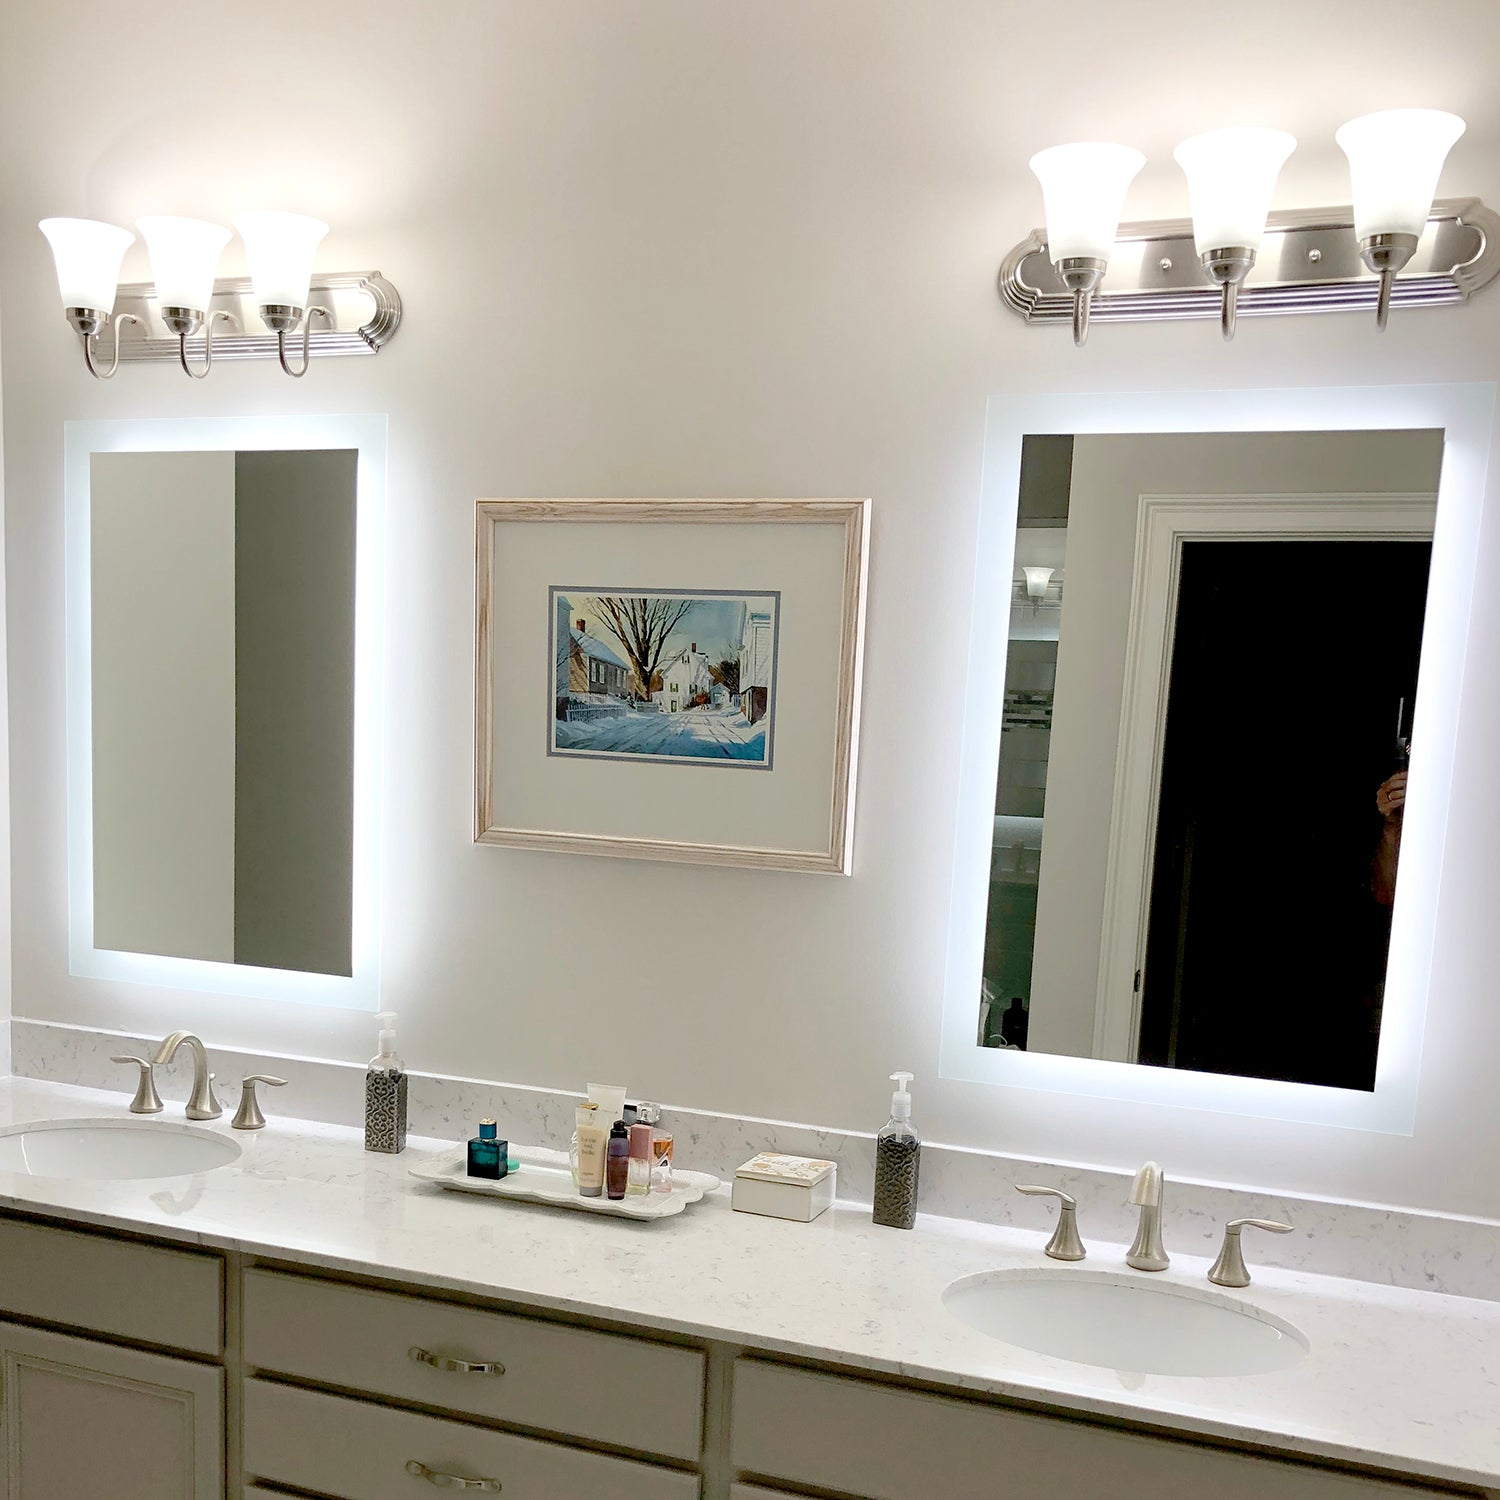 Side Lighted Led Bathroom Vanity Mirror 20 X 28 Rectangular Mirrors Marble